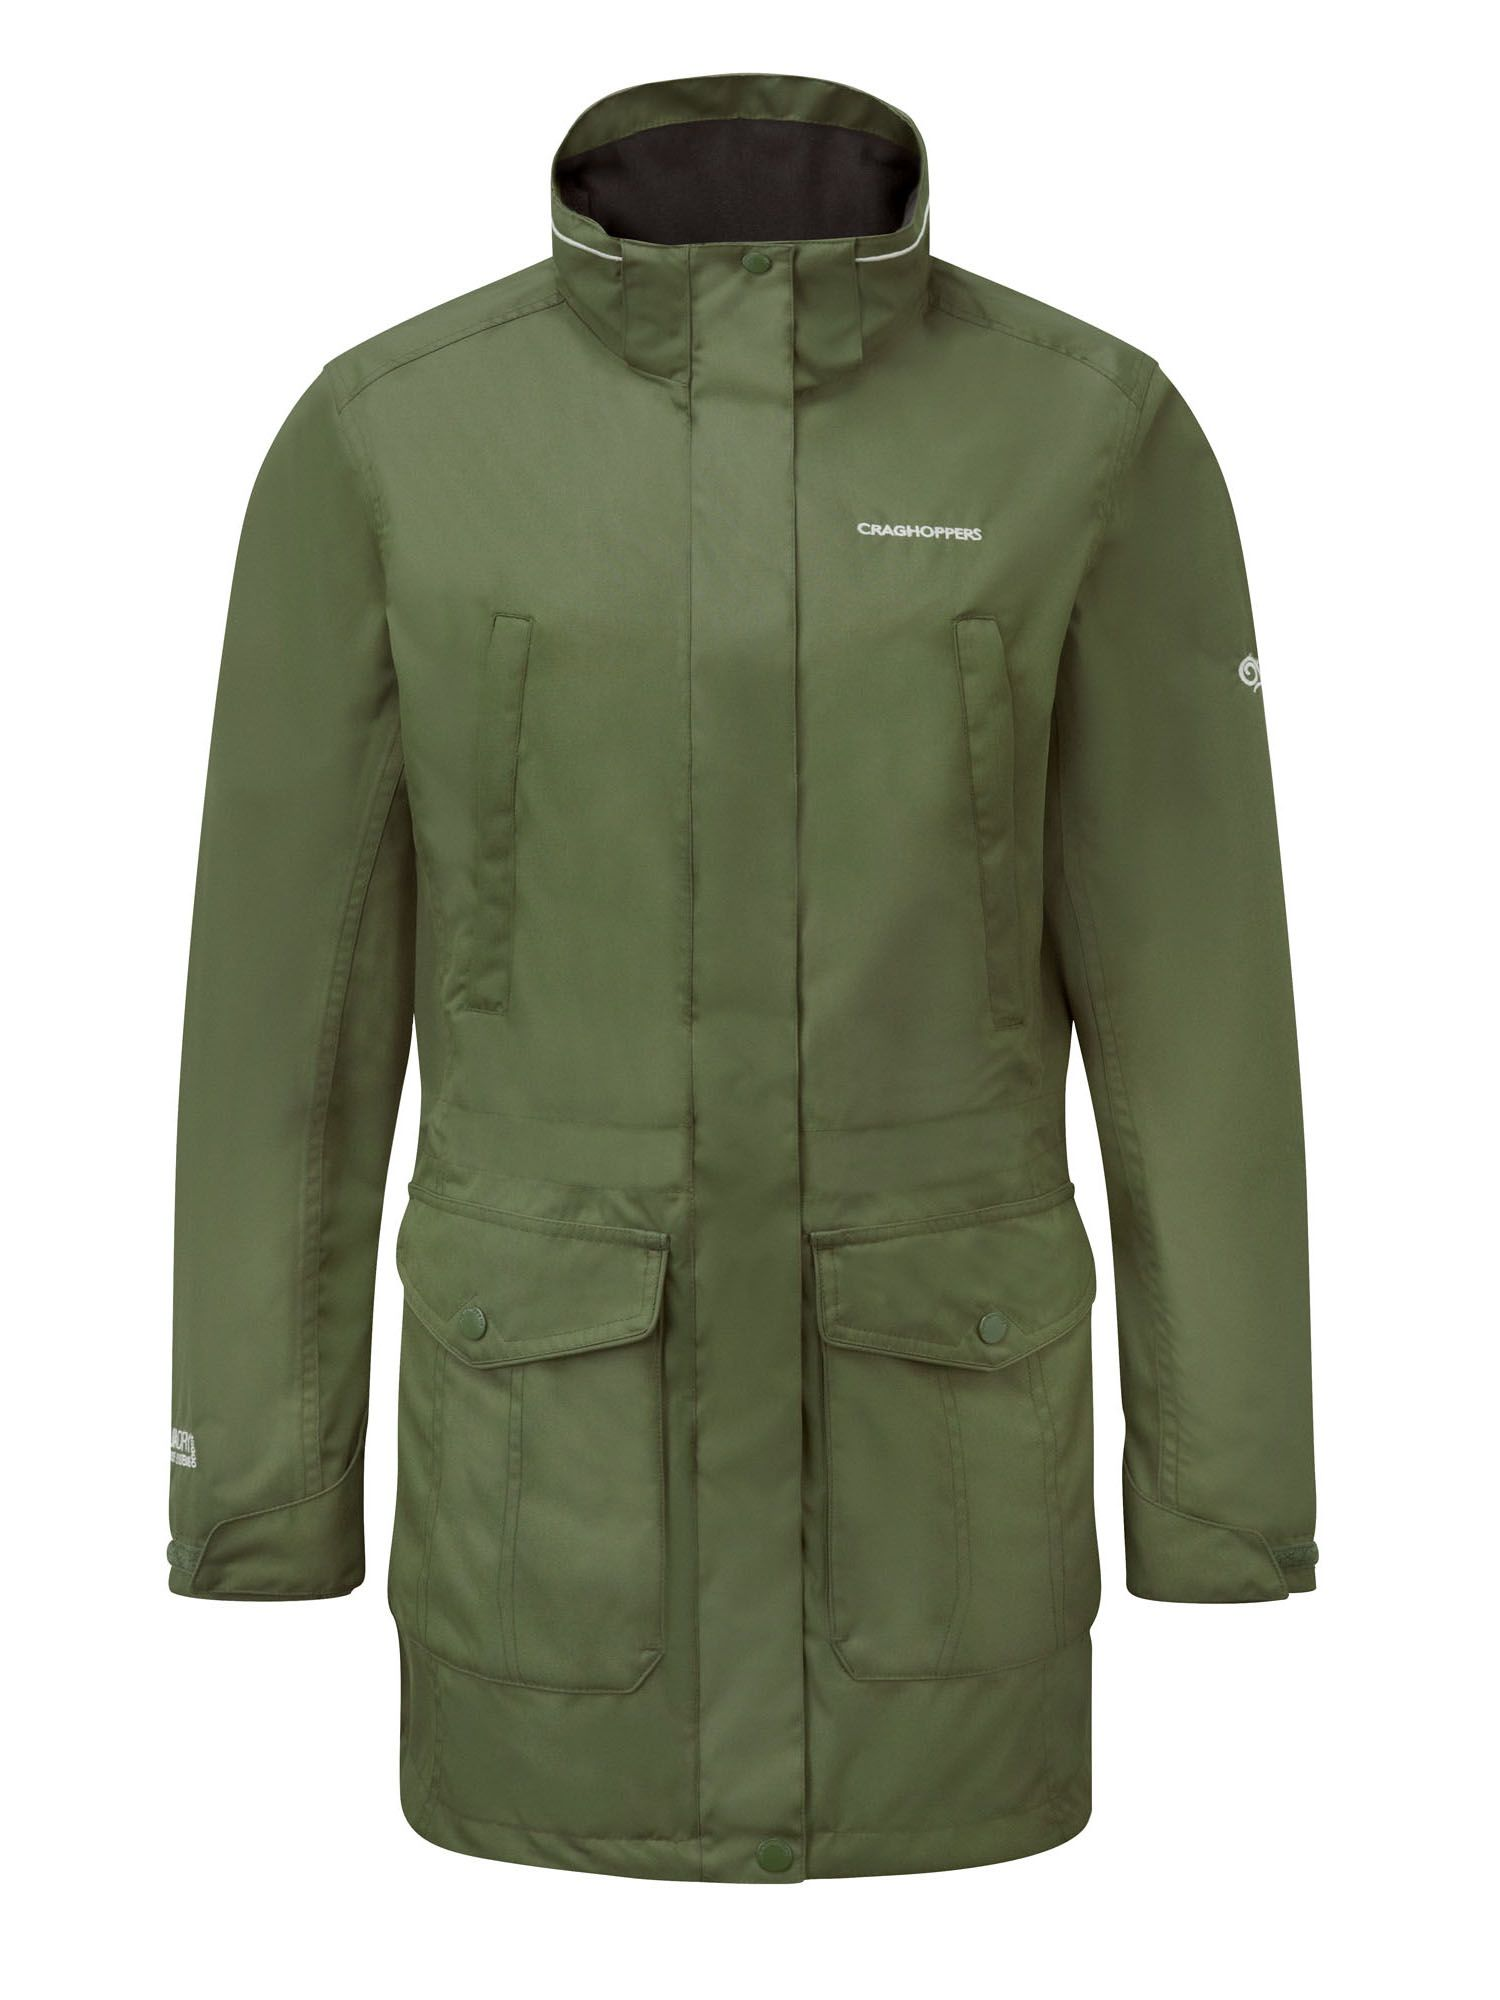 Craghoppers Madigan lll Long Waterproof Jacket, Green